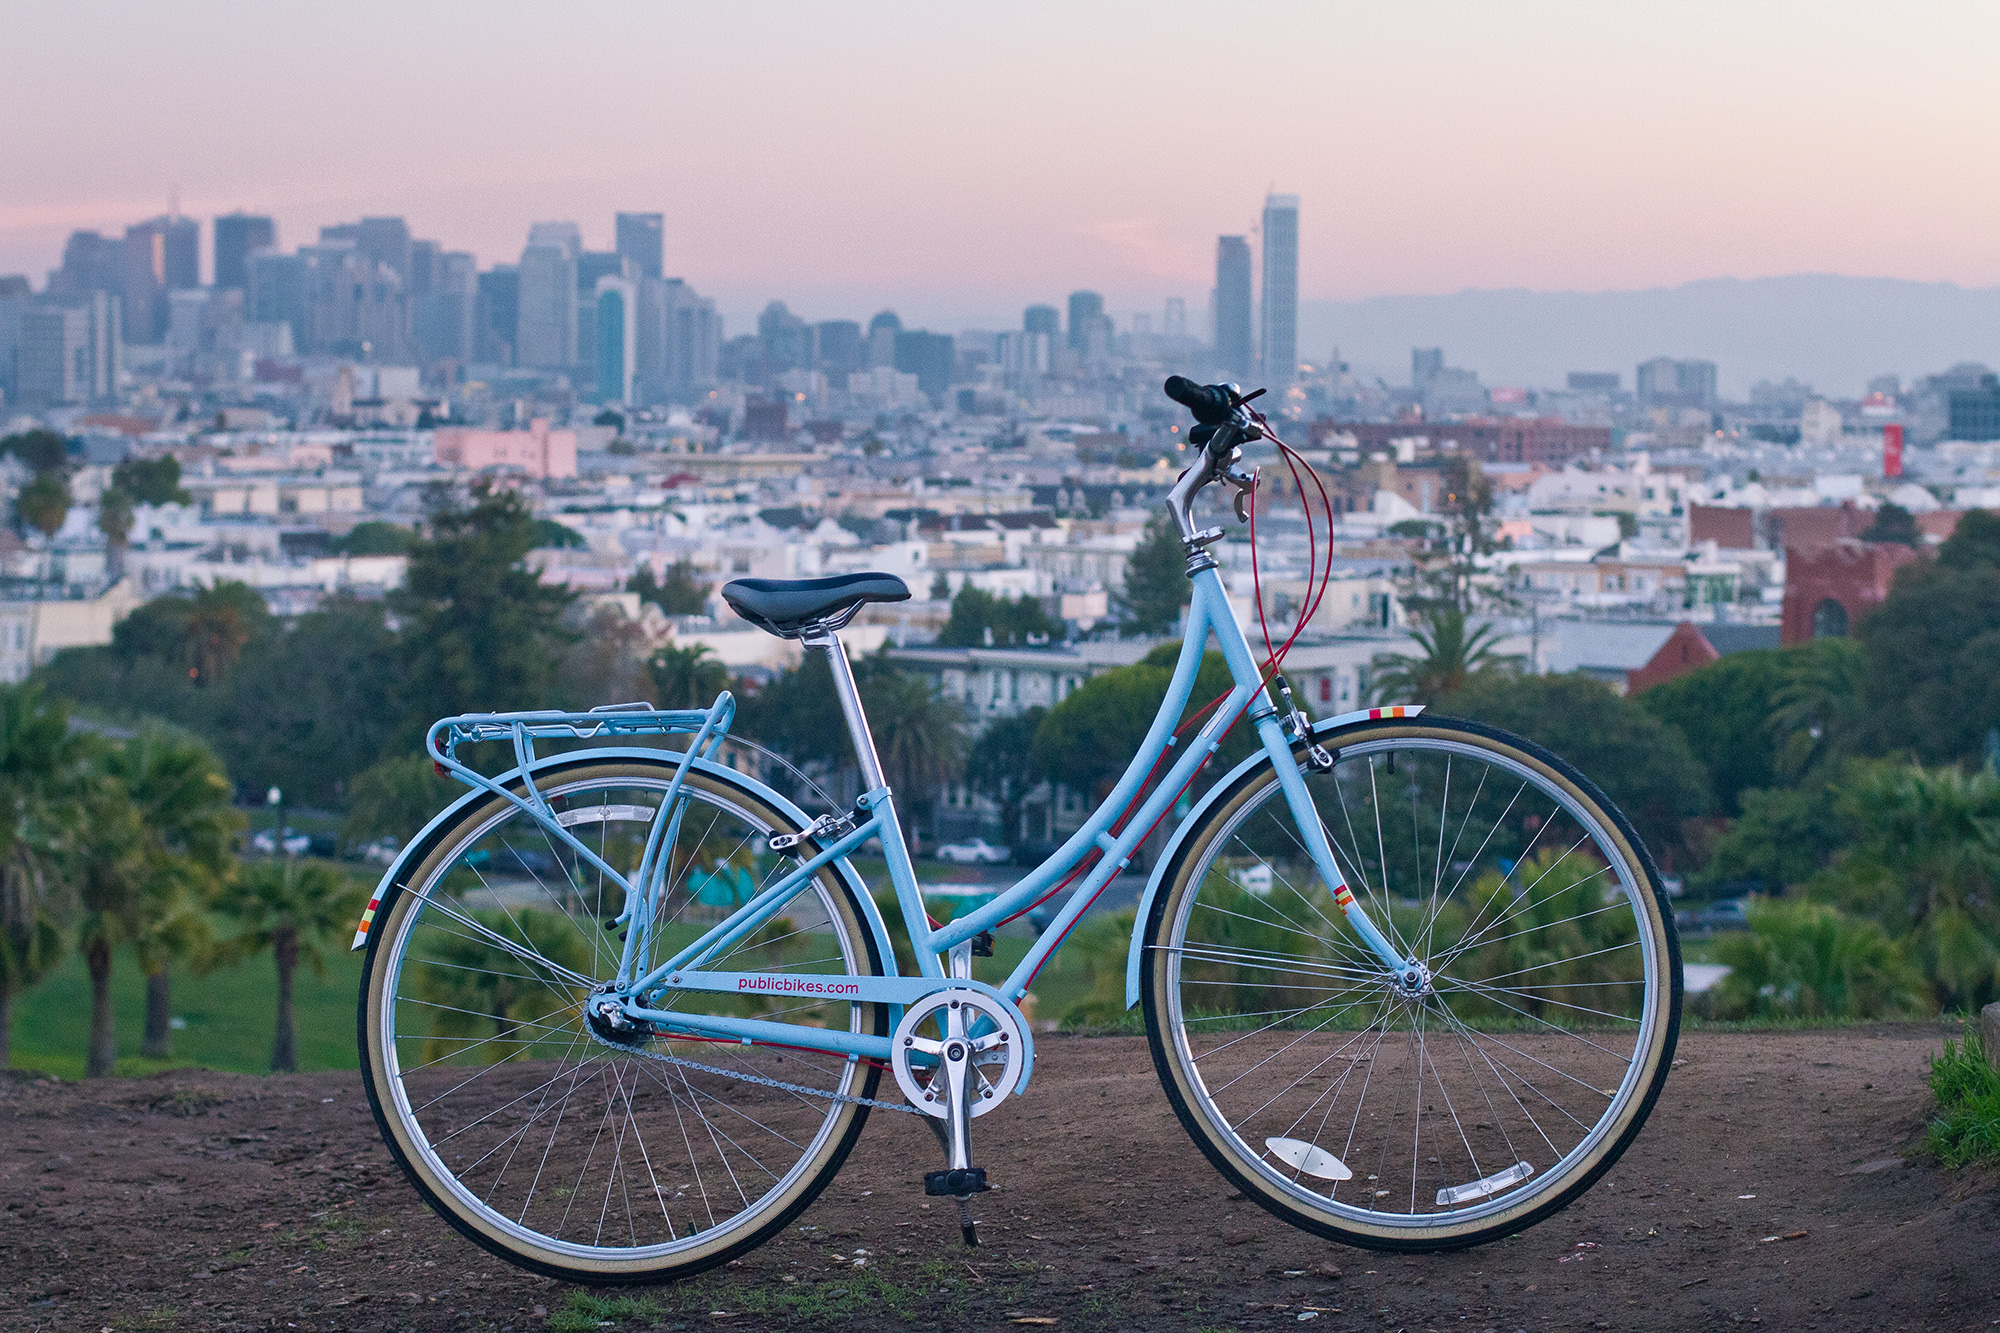 sunrise at dolores park and public bikes